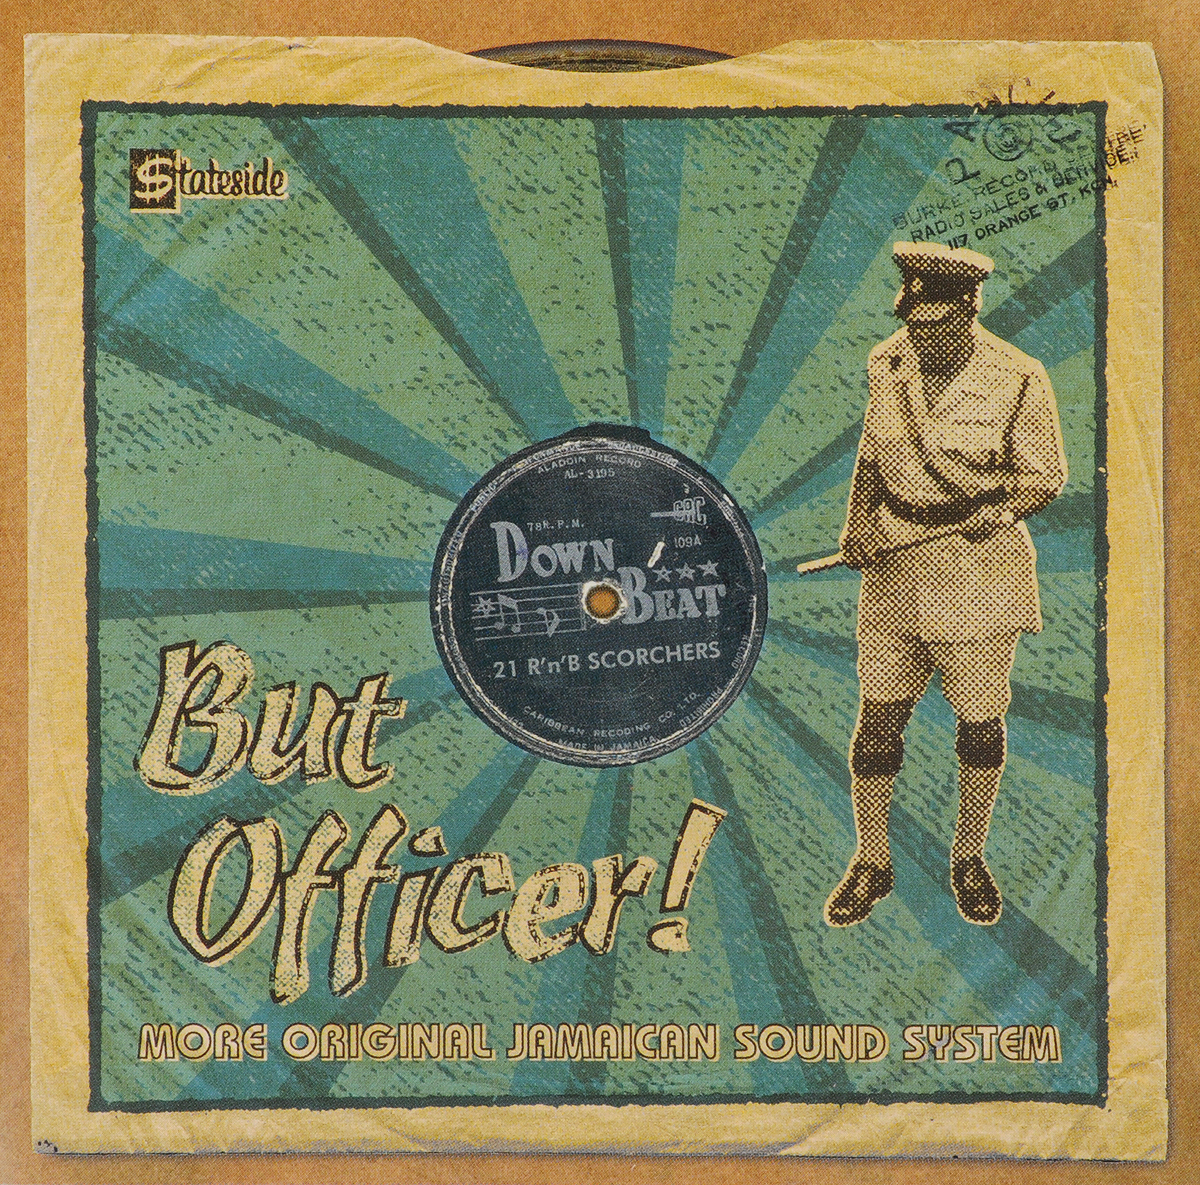 VARIOUS ARTISTS. BUT OFFICER! MORE ORIGINAL JAMAICAN SOUND SYSTEM